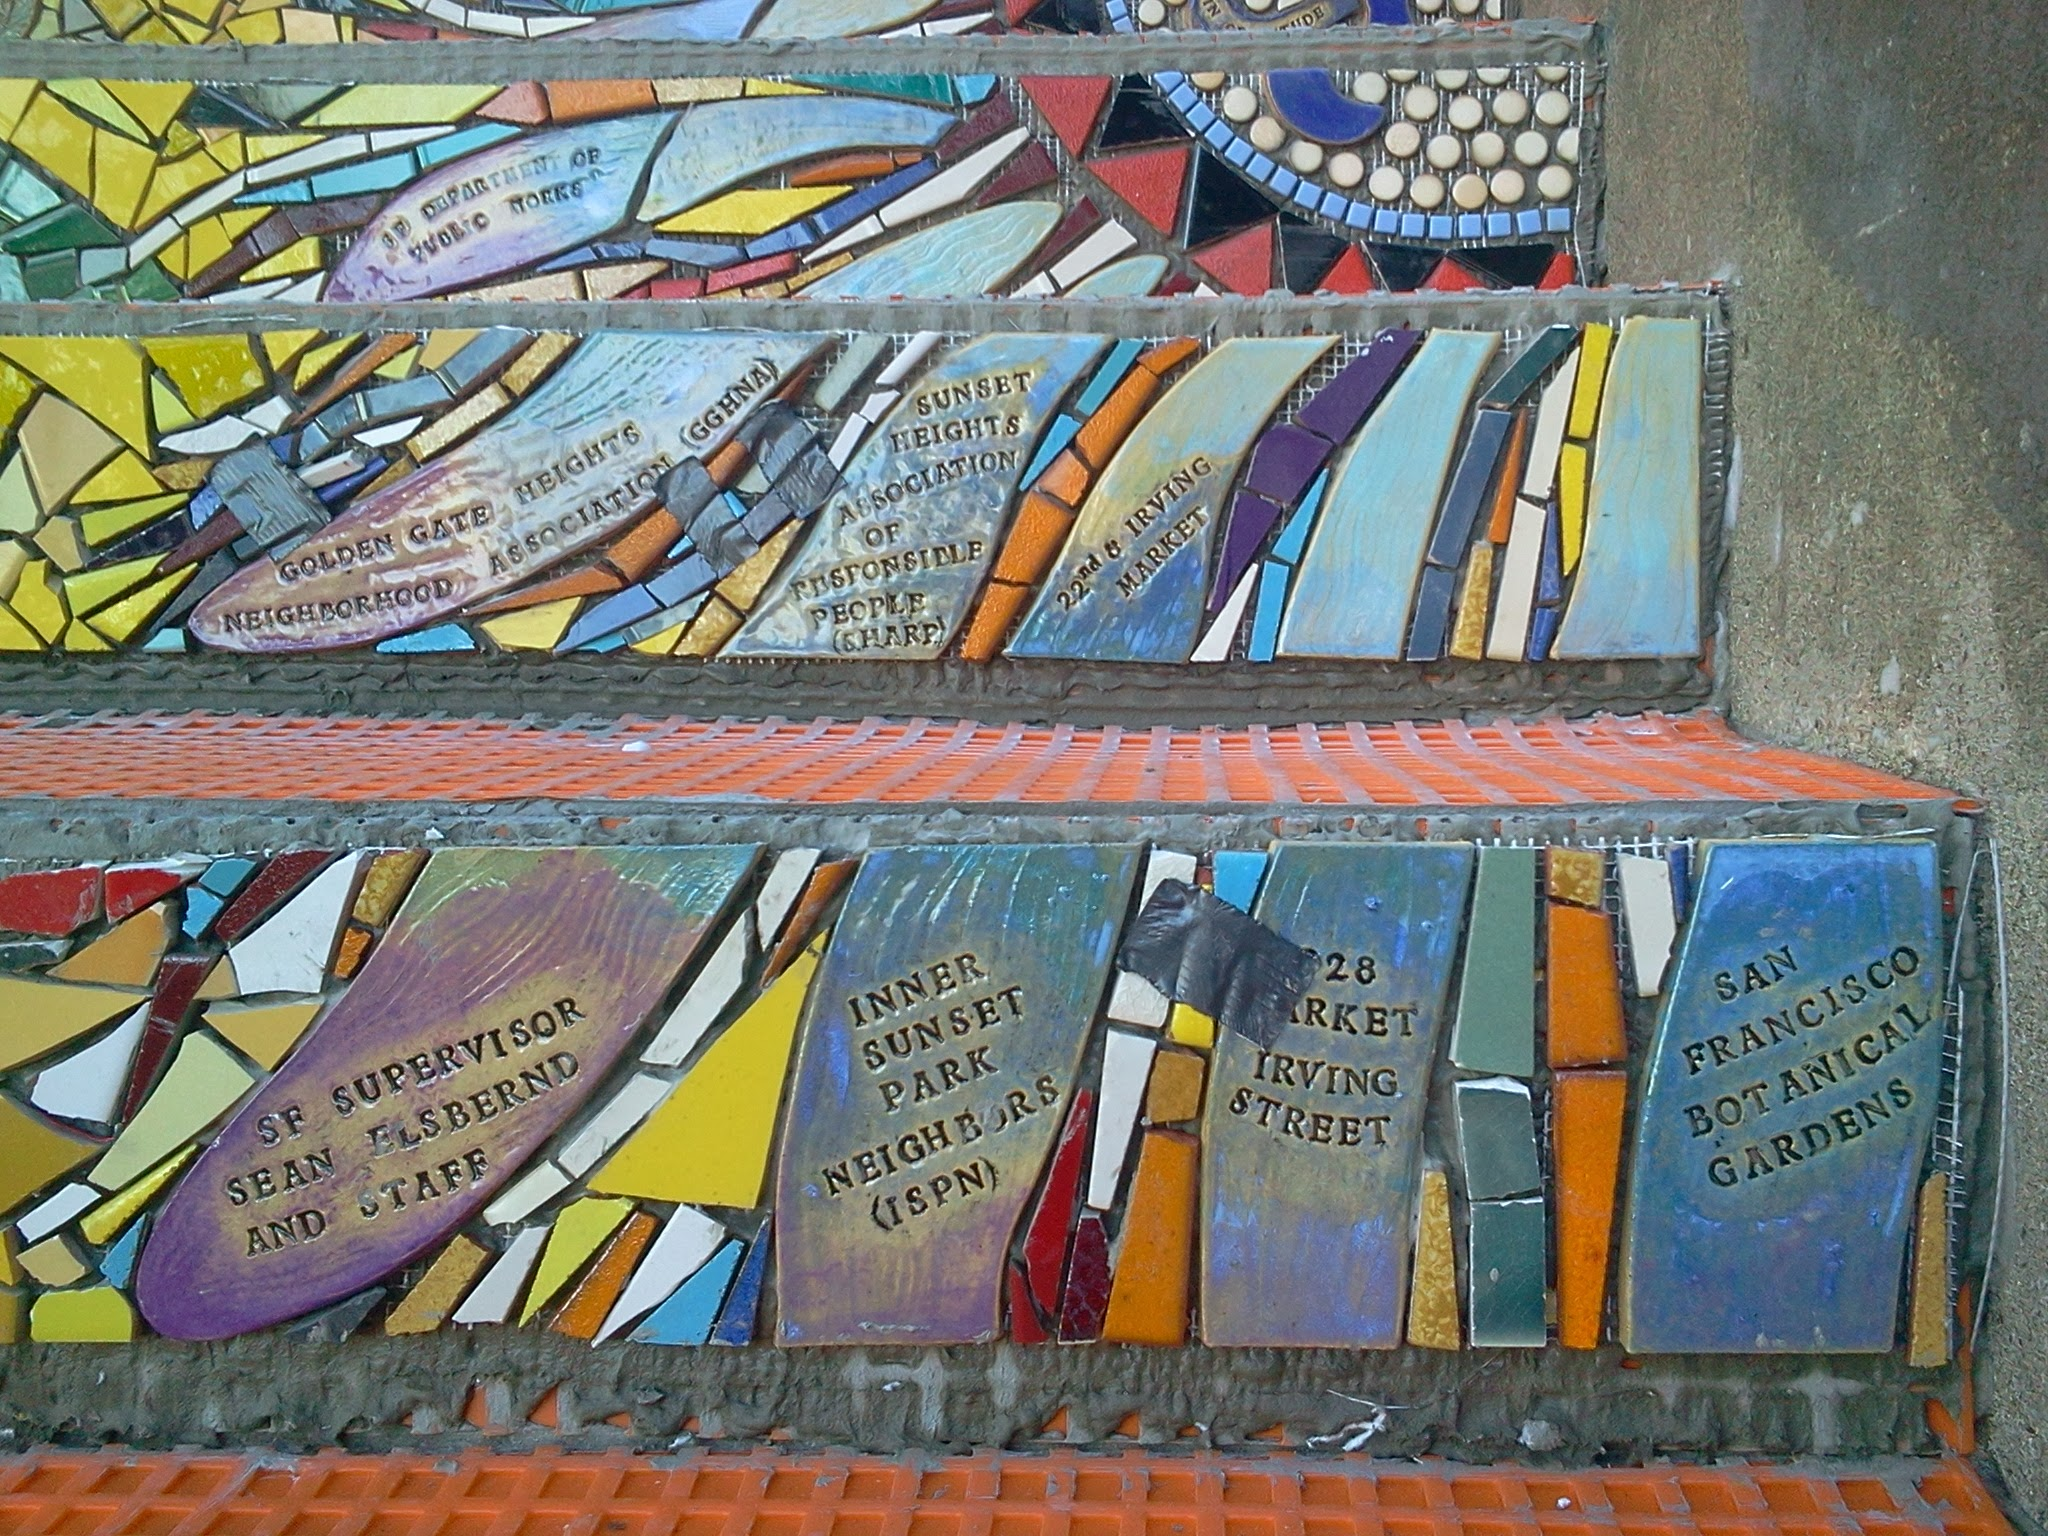 """Photo: Detail of bottom half of passion flower (the """"Gratitude"""" element, thanking organizations and businesses that provided substantial support and in-kind gifts) on the fourth flight of steps (from bottom) of the Hidden Garden Steps (16th Avenue, between Kirkham and Lawton streets in San Francisco's Inner Sunset District) installed on October 31, 2013. KZ Tile workers finished installing more than 80 pieces of the 148-step ceramic-tile mosaic designed and created by project artists Aileen Barr and Colette Crutcher. For more information about this volunteer-driven community-based project supported by the San Francisco Parks Alliance, the San Francisco Department of Public Works Street Parks Program, and hundreds of individual donors, please visit our website at http://hiddengardensteps.org."""